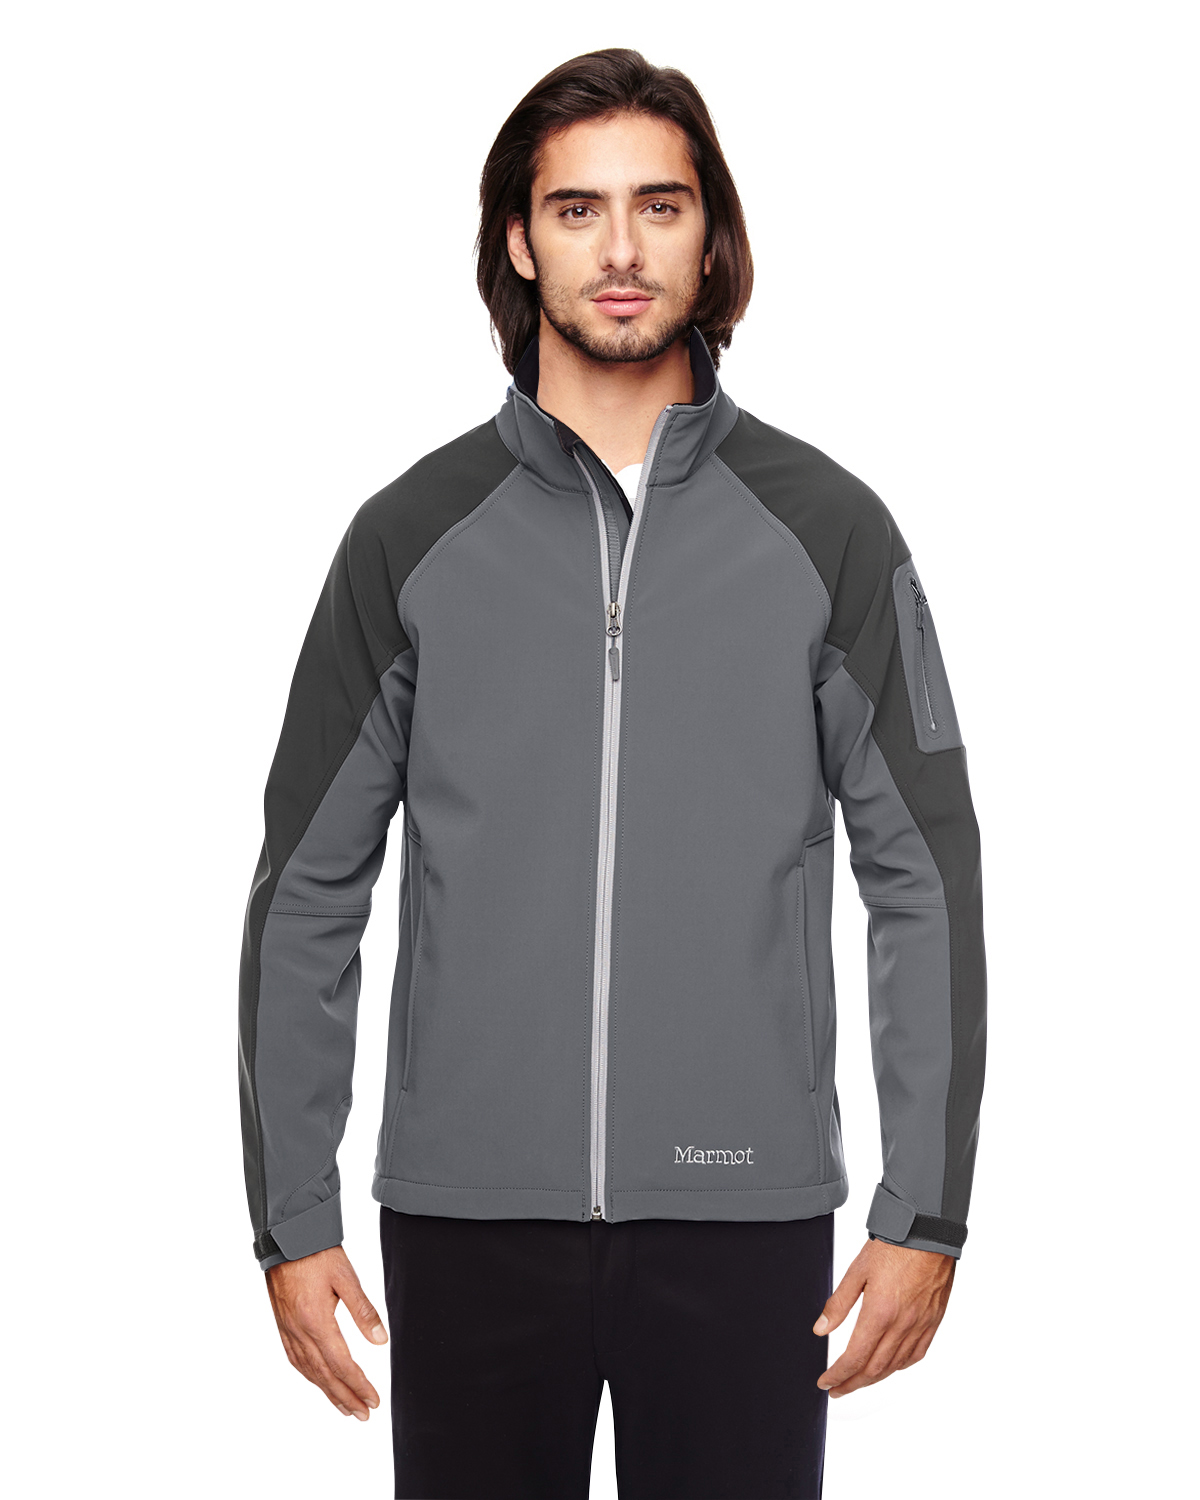 Marmot - 98160, Men's Gravity Jacket - Logo Masters International